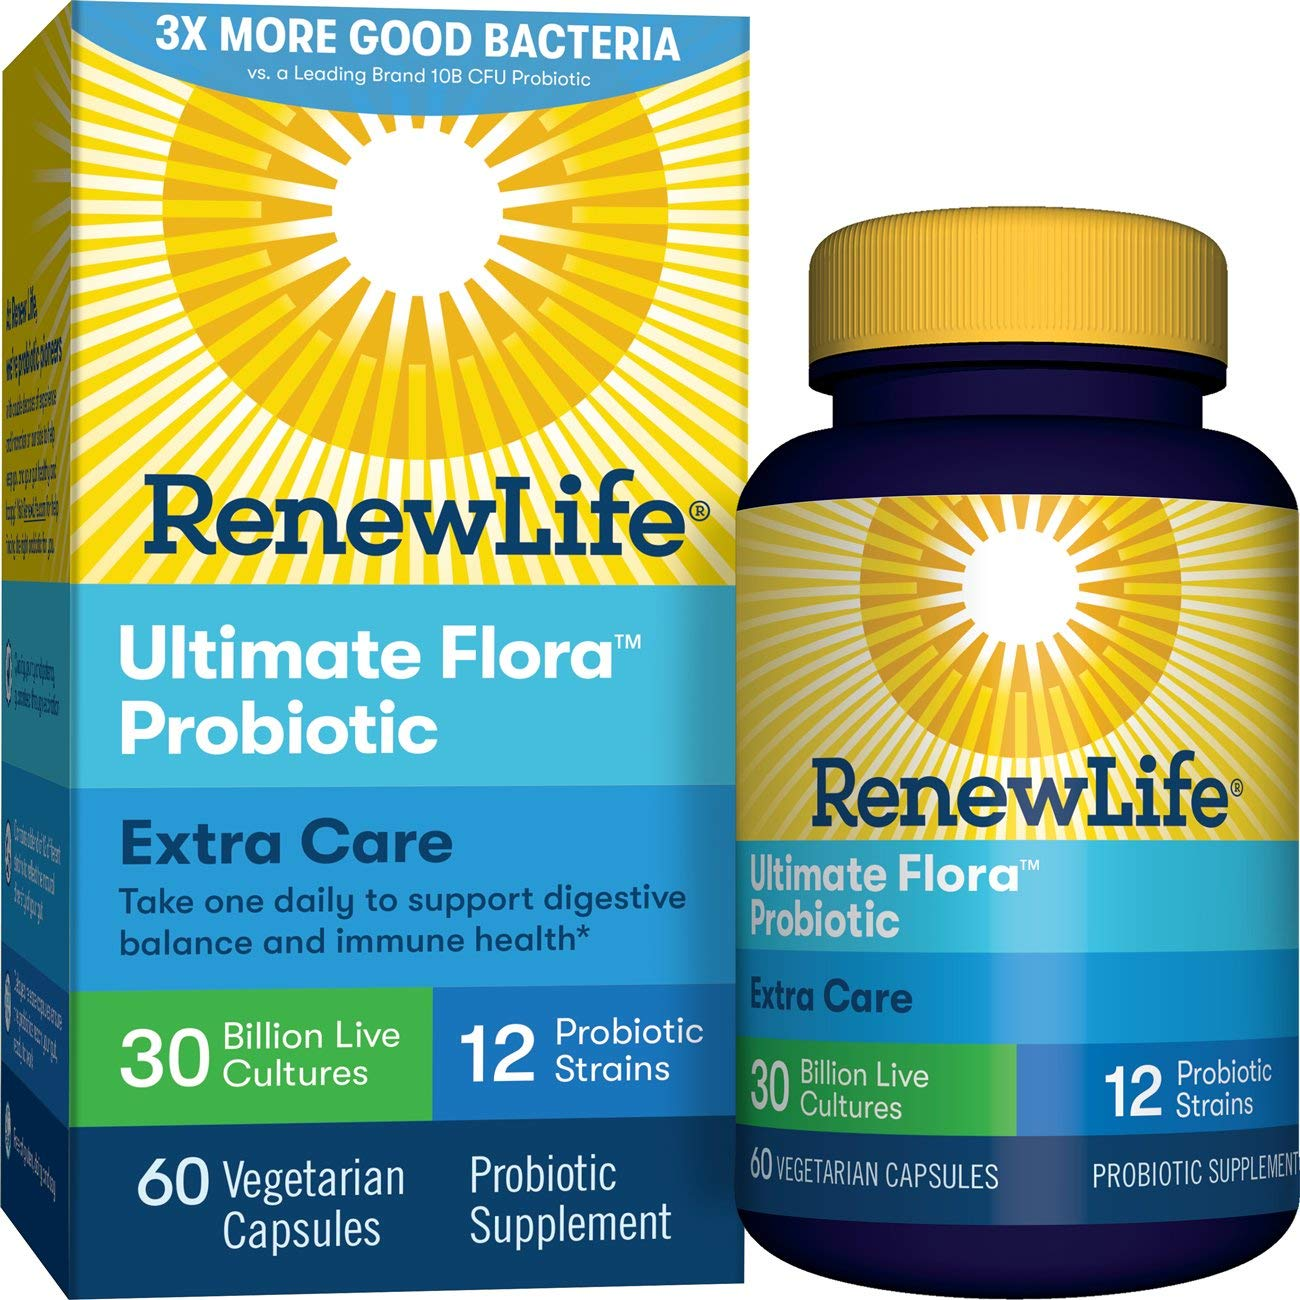 Renew Life Adult Probiotic - Ultimate Flora Extra Care, Shelf Stable Probiotic Supplement - 30 billion - 60 Vegetable Capsules (Packaging May Vary)